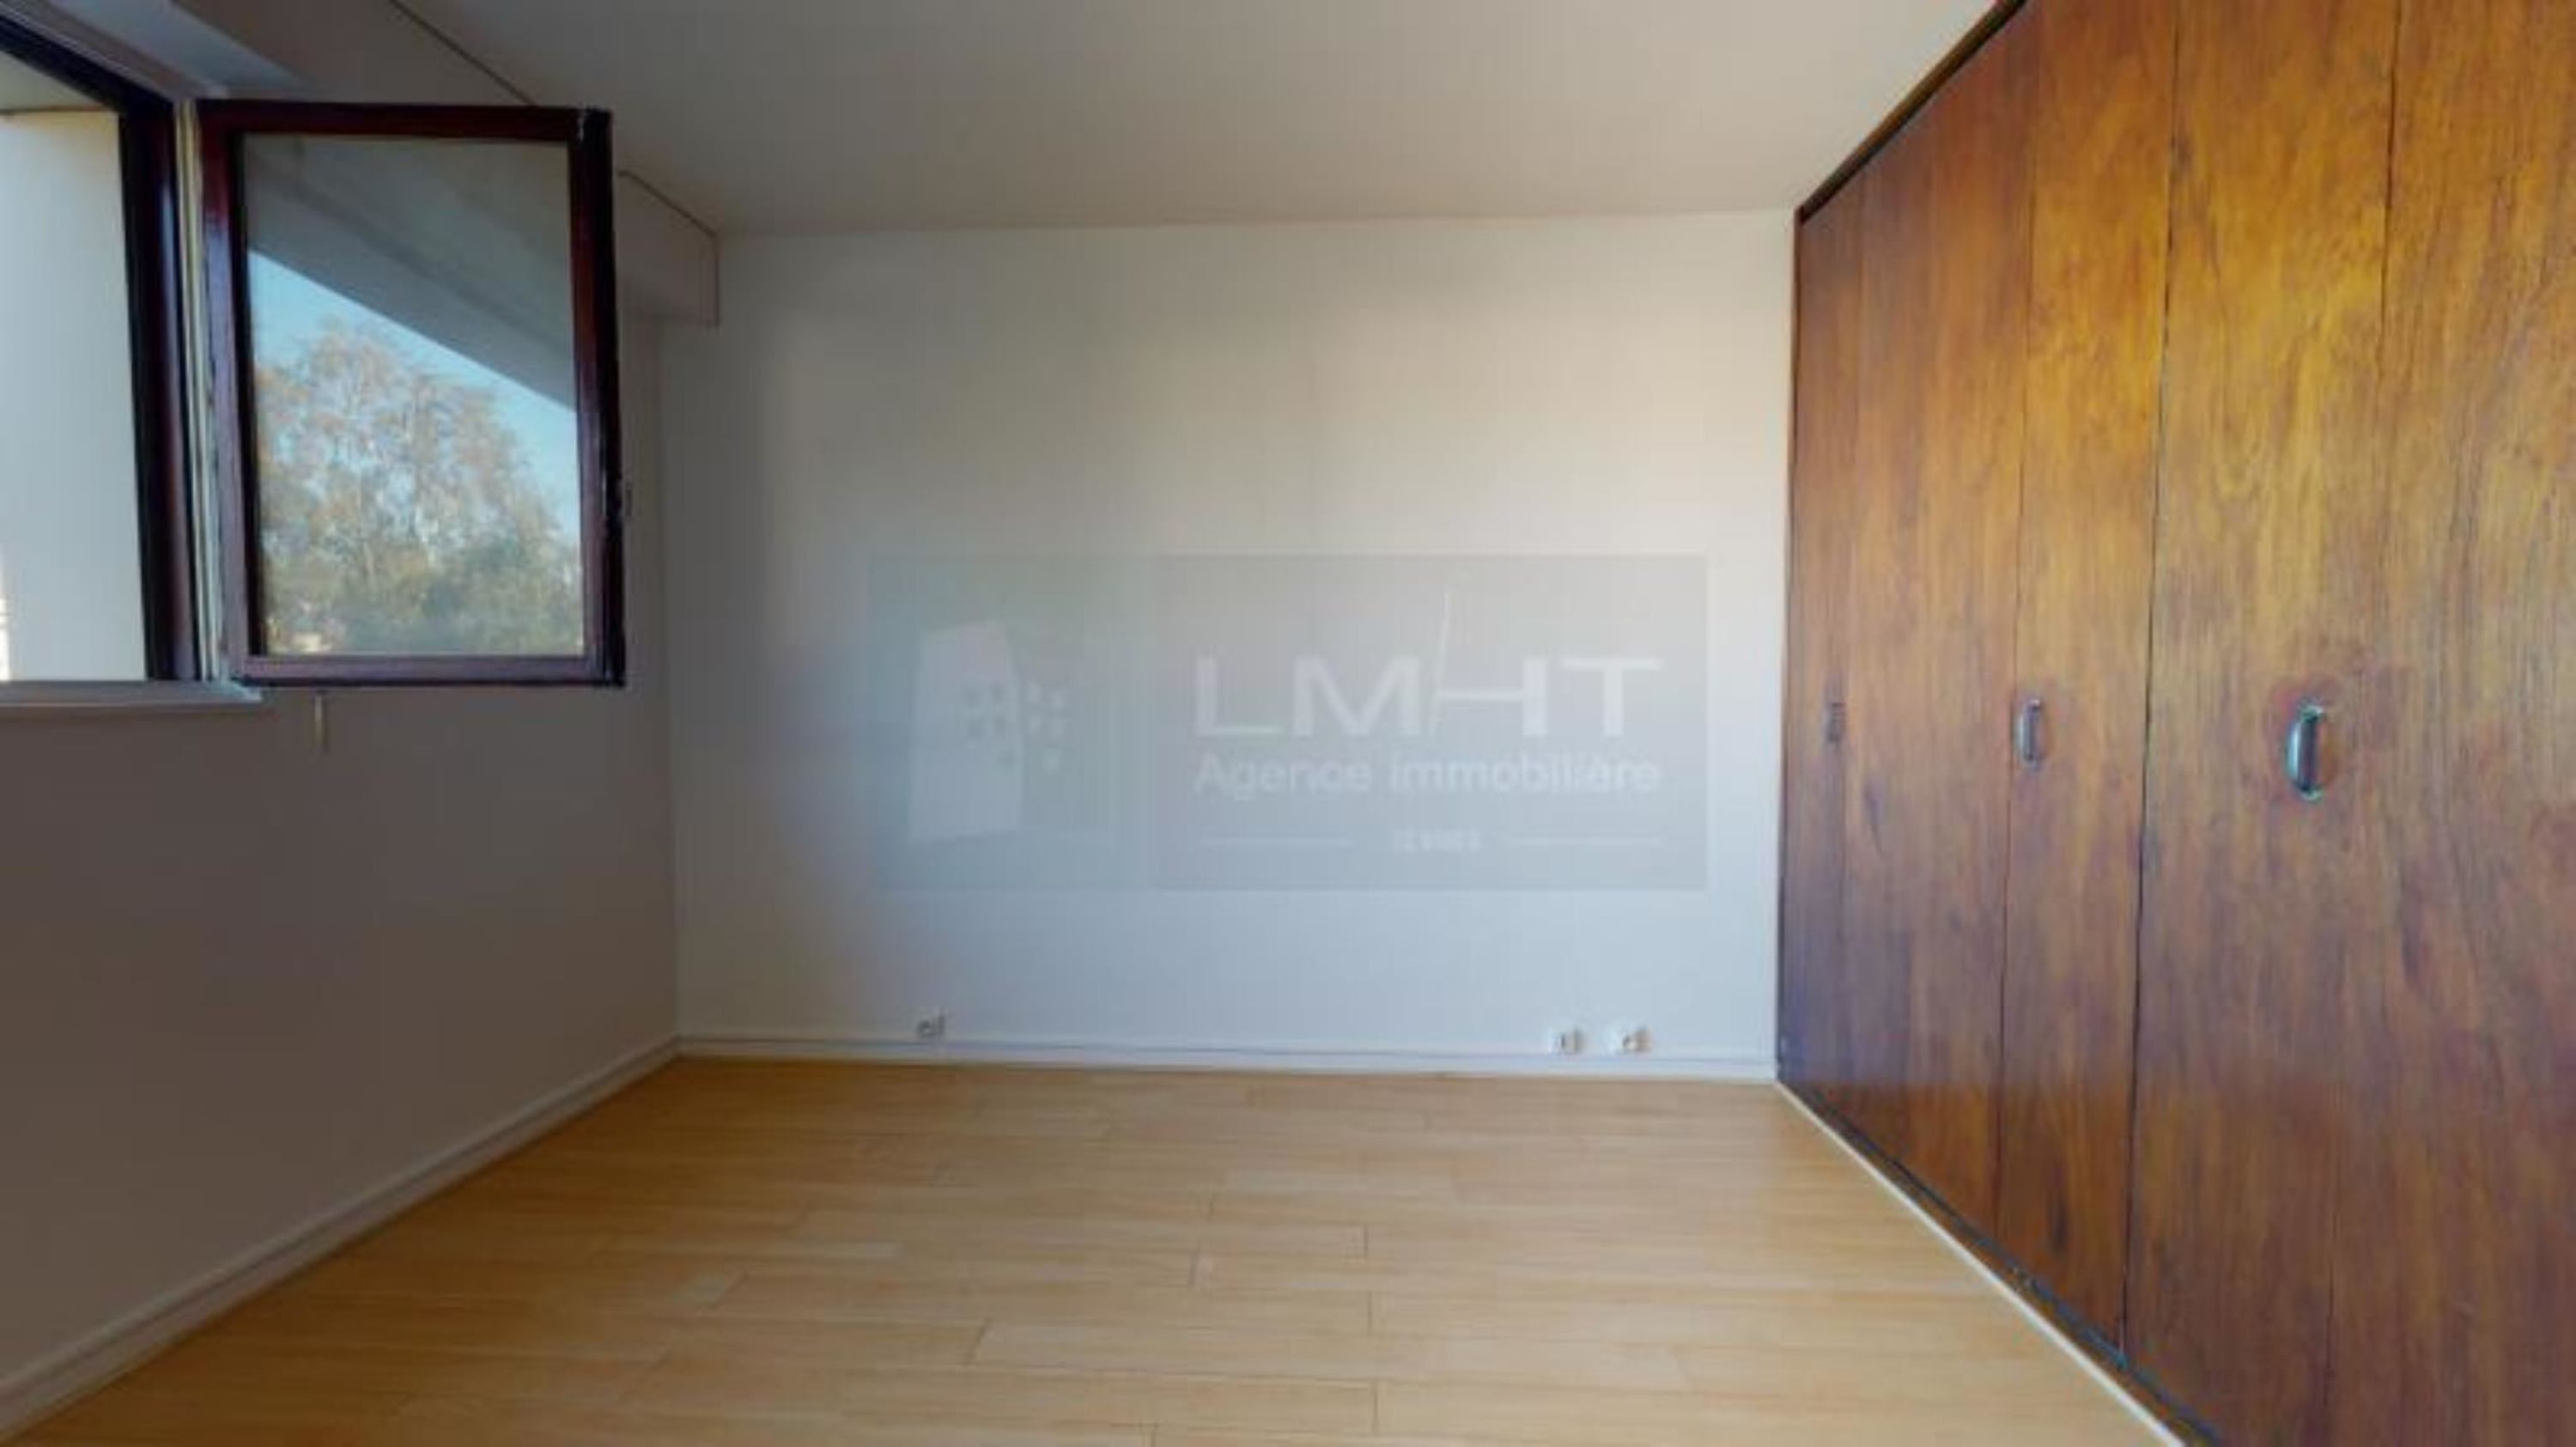 agence immobilière sevres 92 le chesnay 78 achat vente location appartement maison immobilier LMHT ANF AXMHBDFA